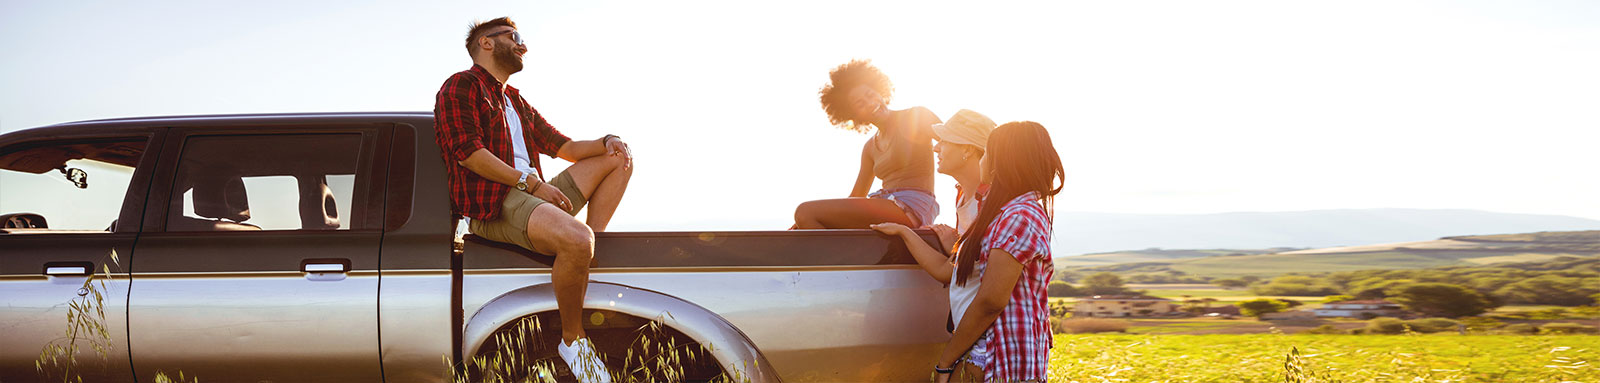 A group of young adults stand around a ute in a field